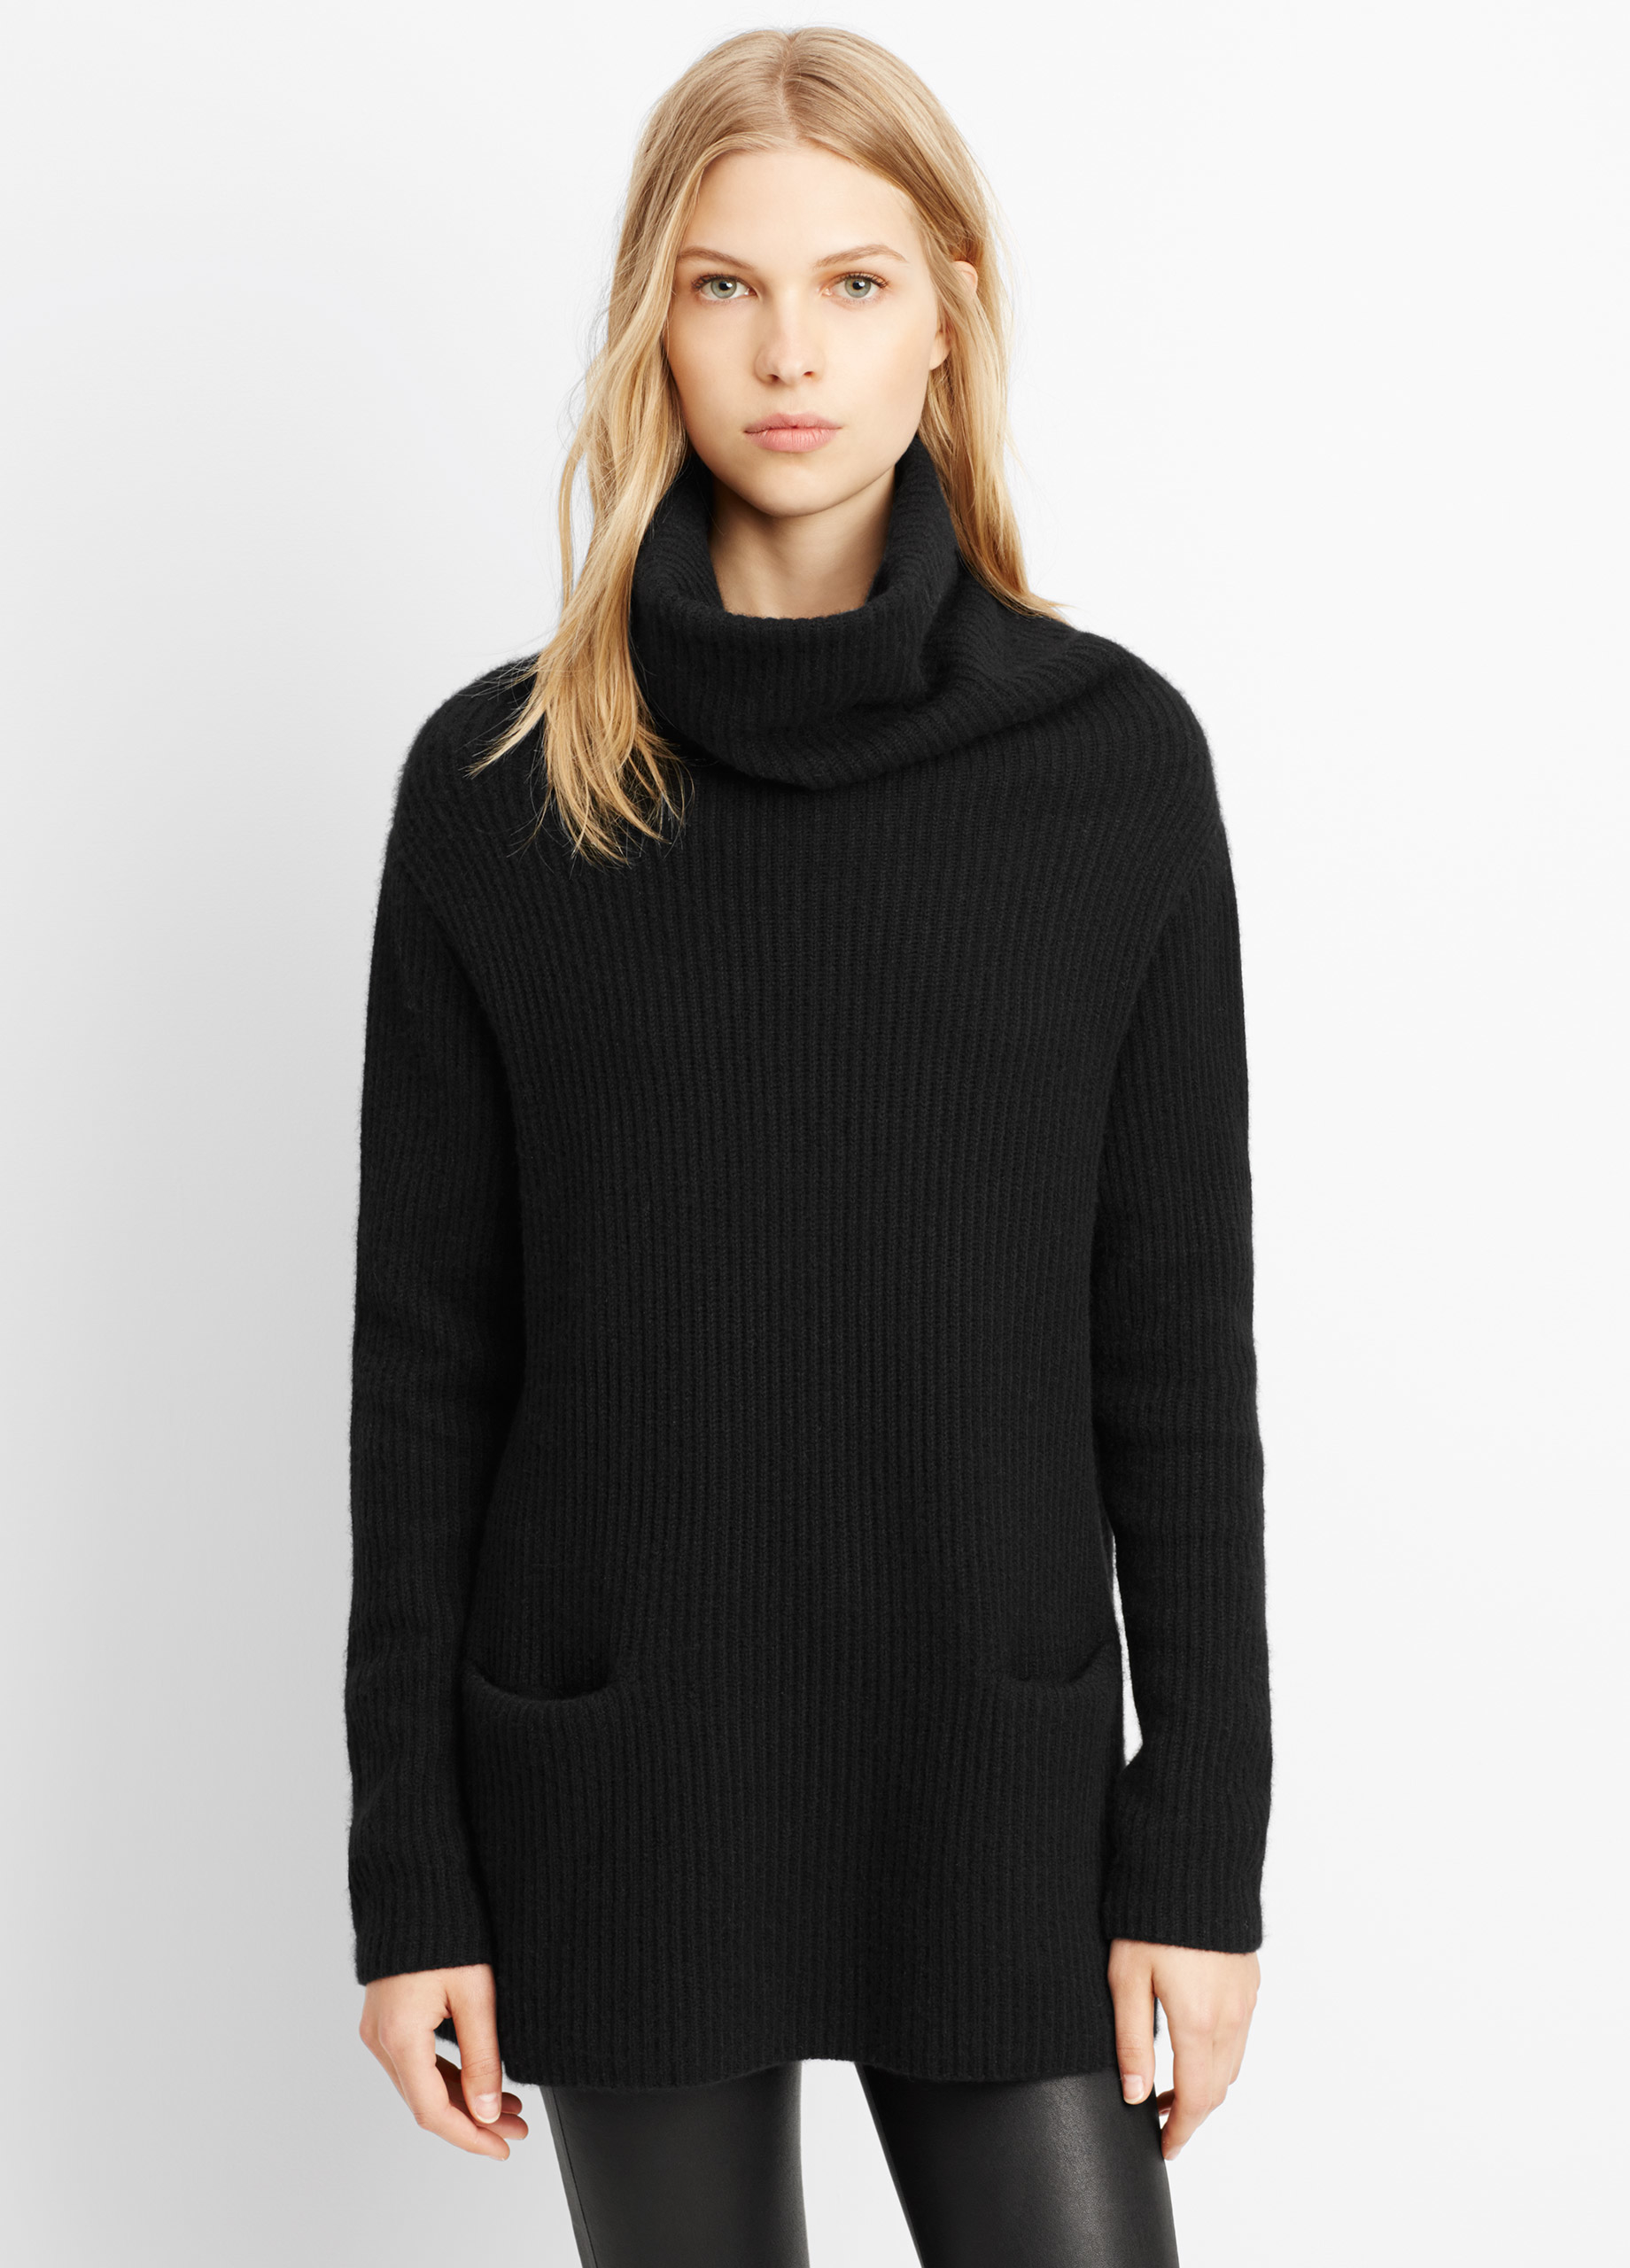 FEATURING 100% wool sweaters from norlender™, vrikke™ and DALE OF NORWAY™